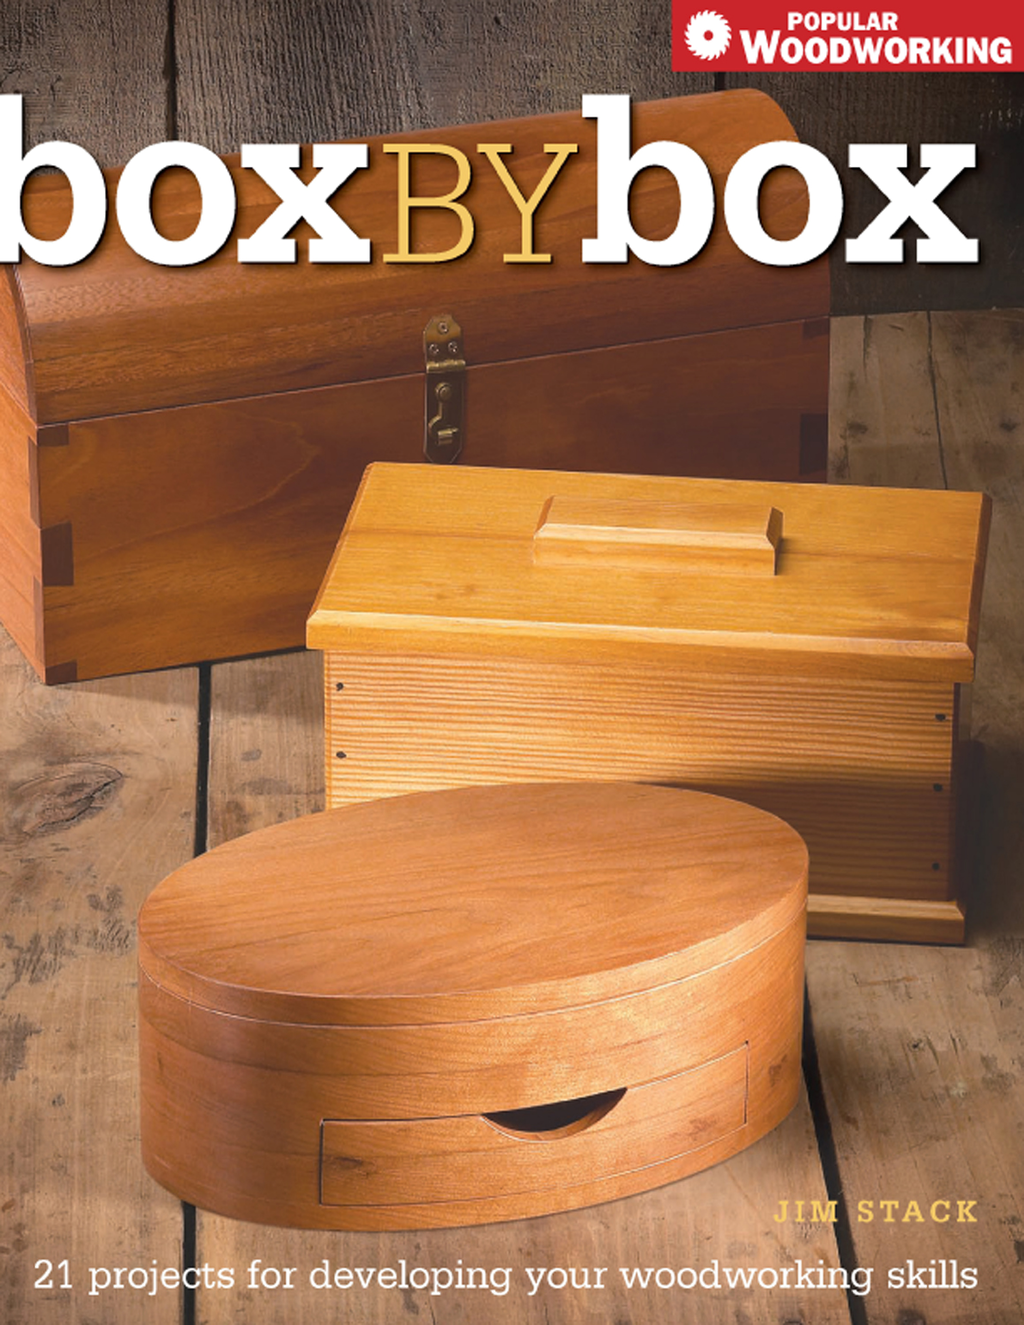 Box by Box 21 Projects for Developing Your Woodworking Skills